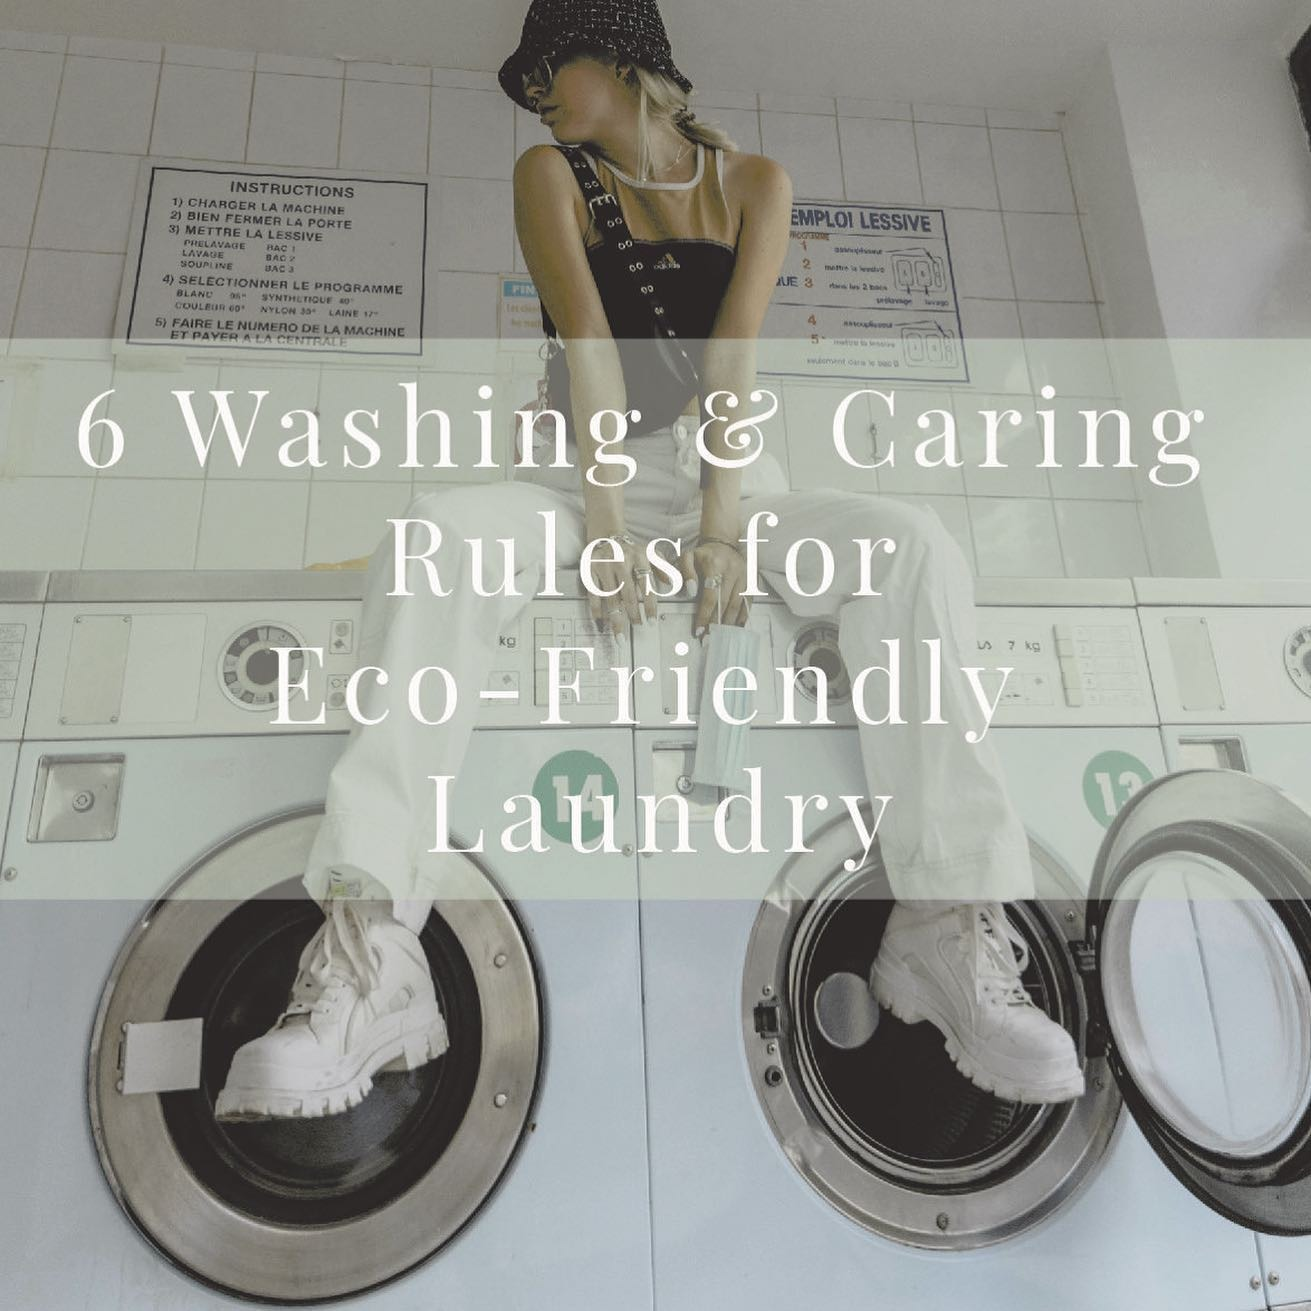 @sagewinther 6 Washing & Caring Rules for Eco-Friendly Laundry Link Thumbnail   Linktree